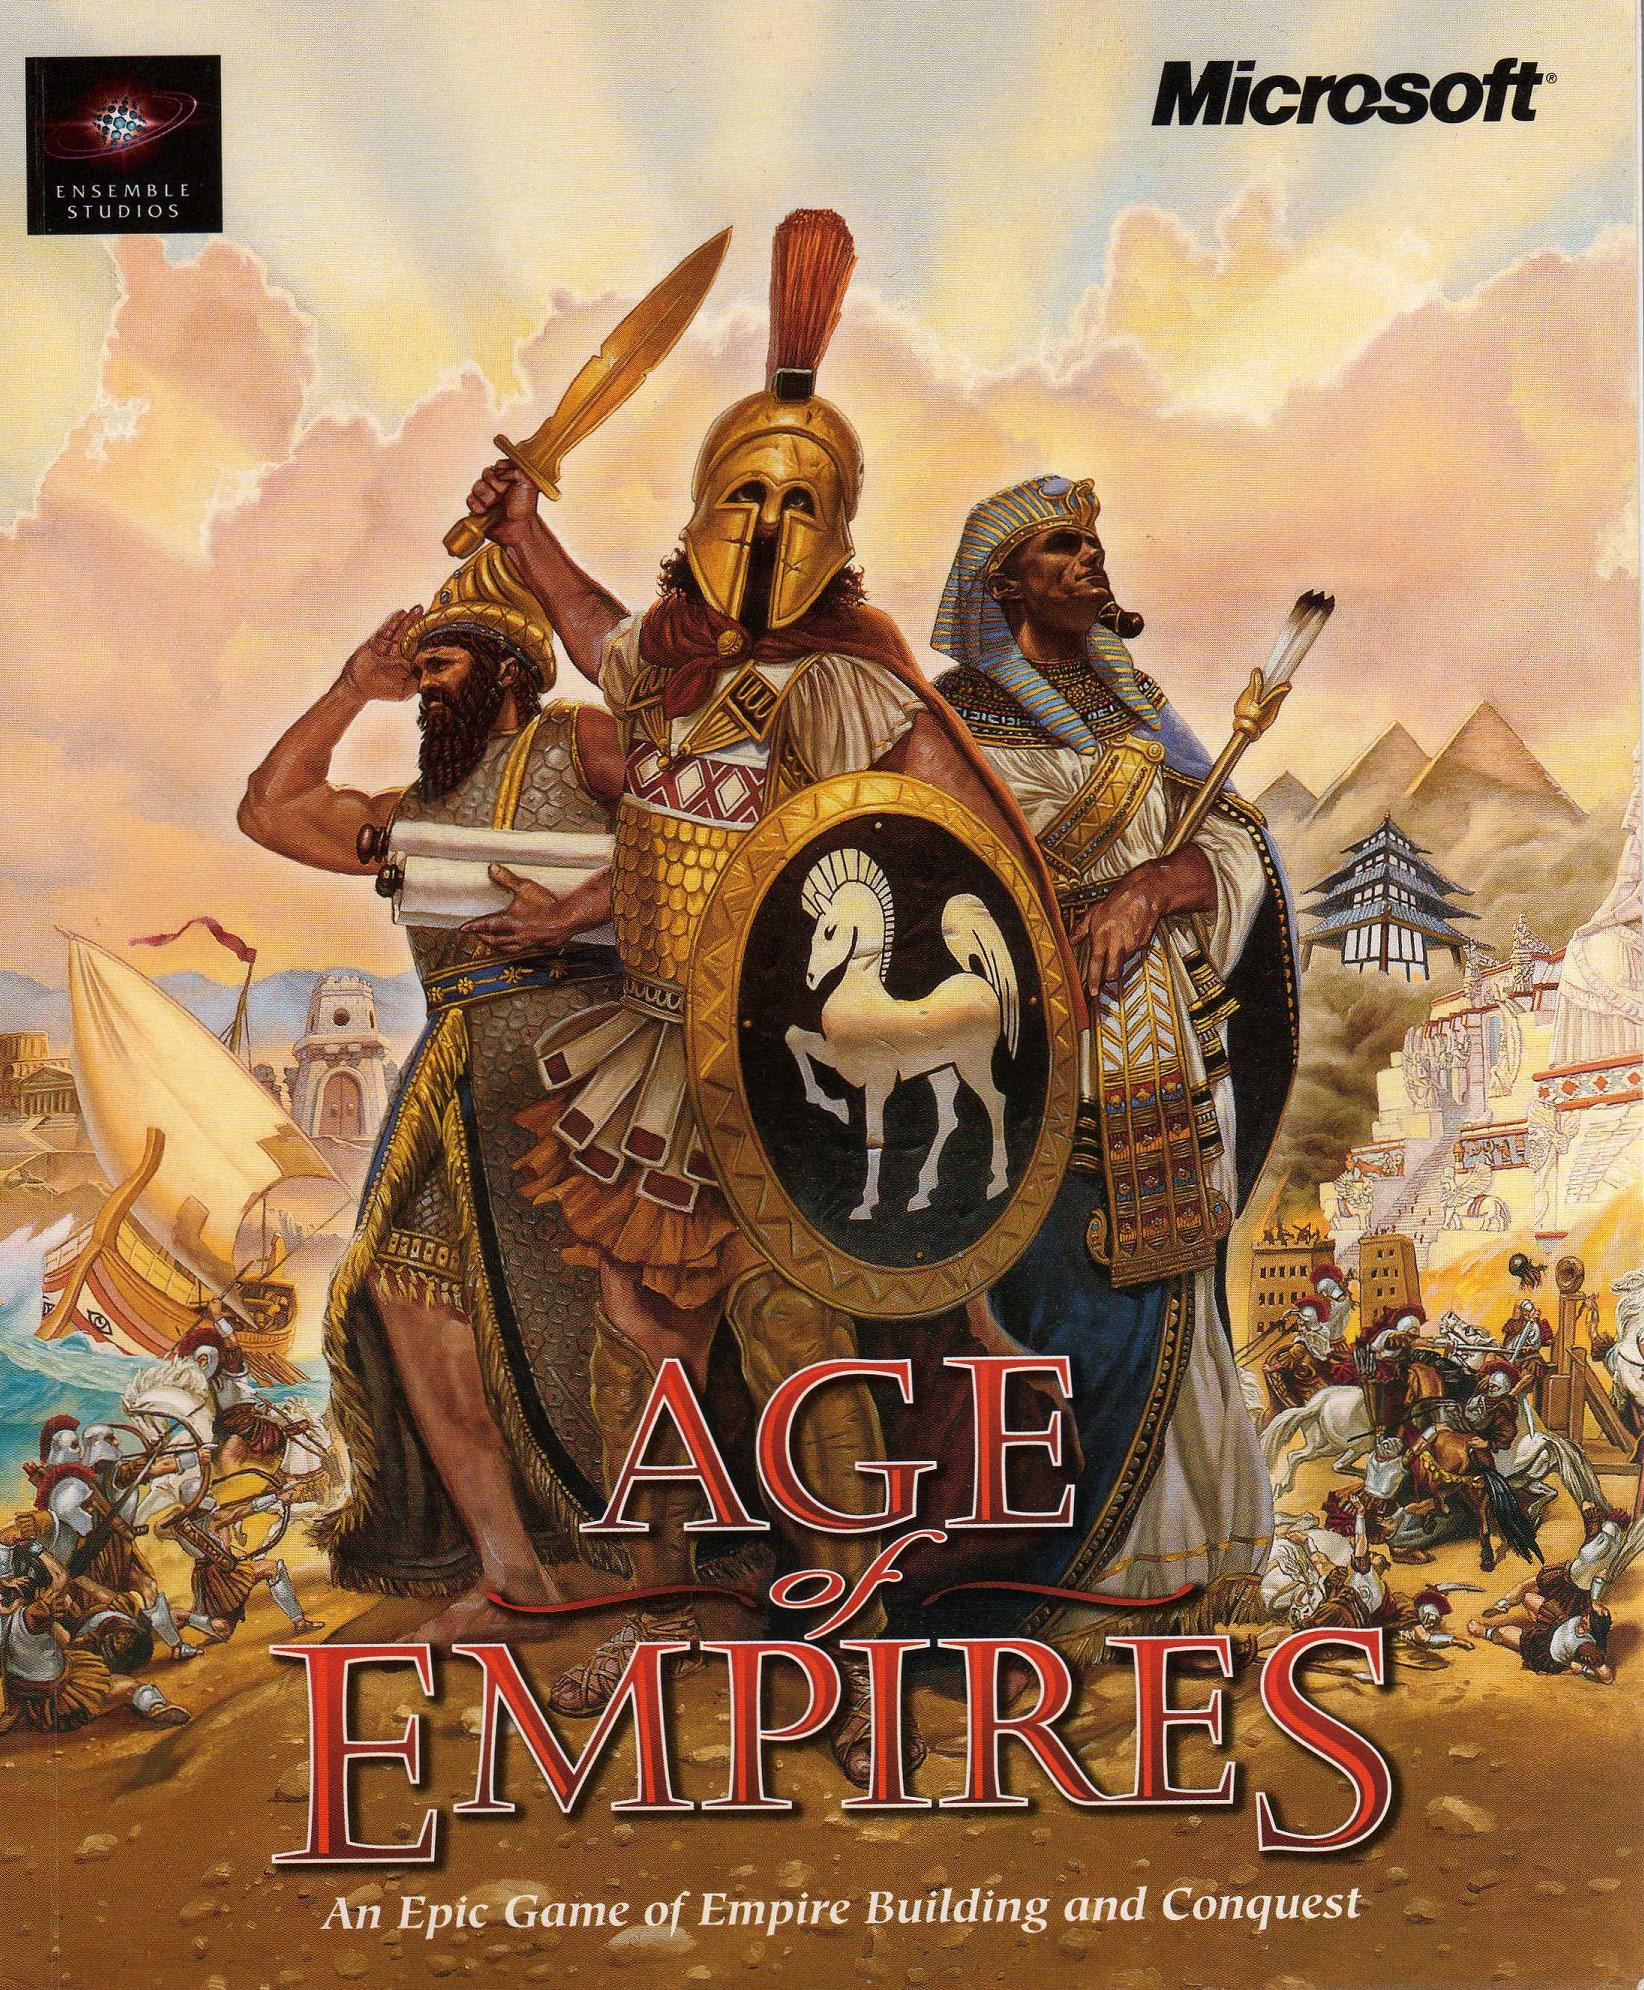 1500 Archers on a 28.8: Network Programming in Age of Empires and Beyond